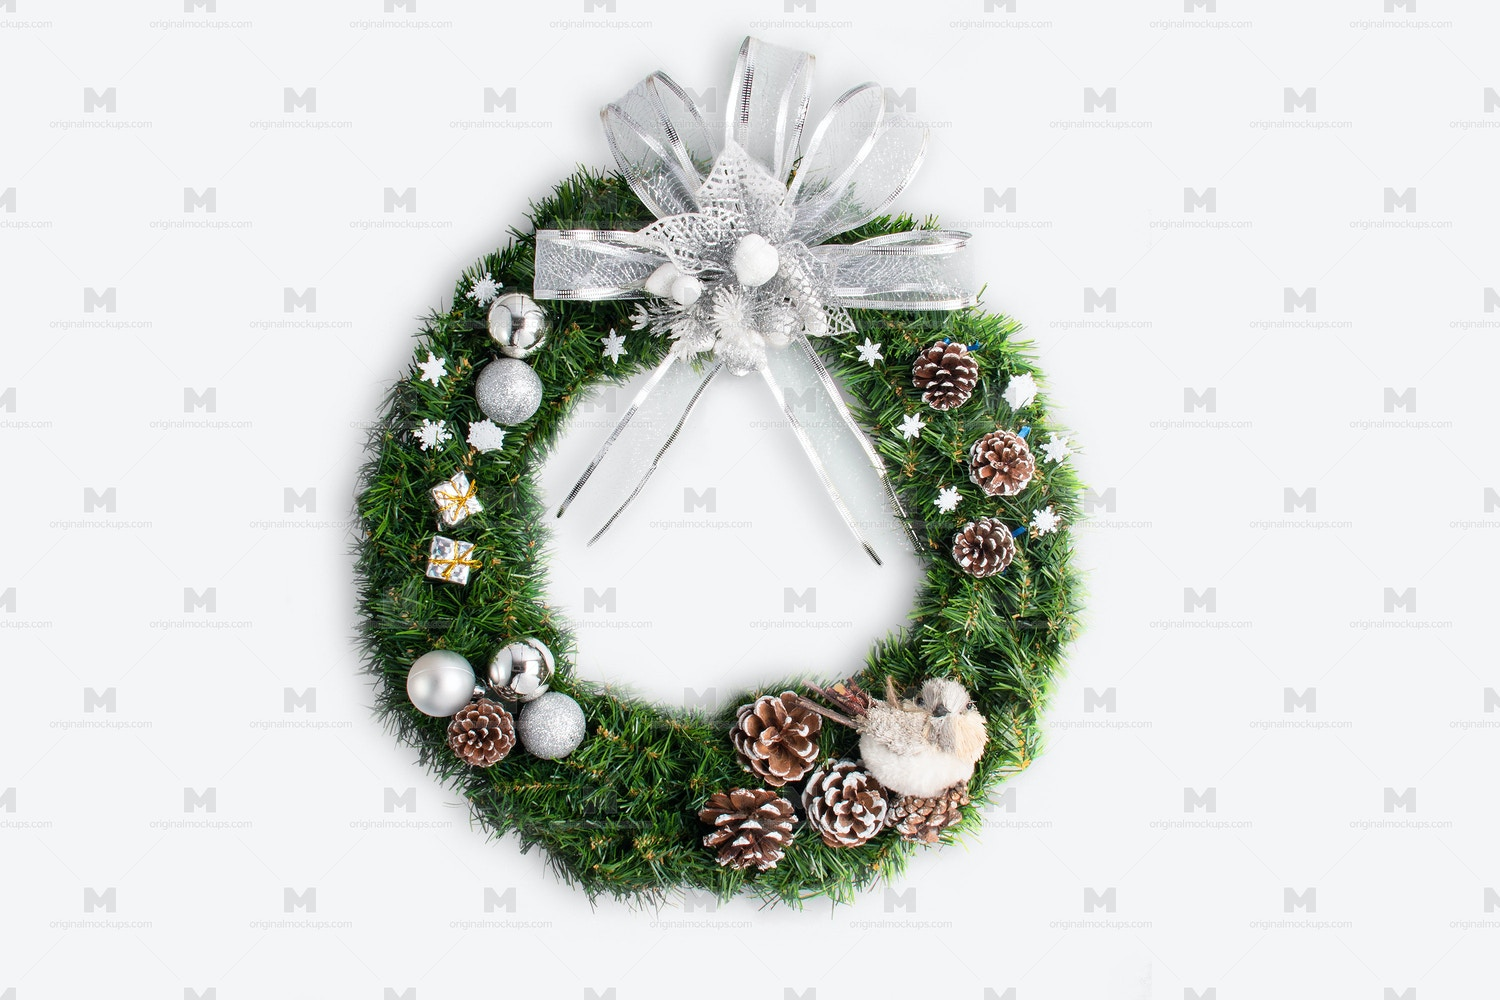 Christmas Wreath Isolate 02 by Original Mockups on Original Mockups